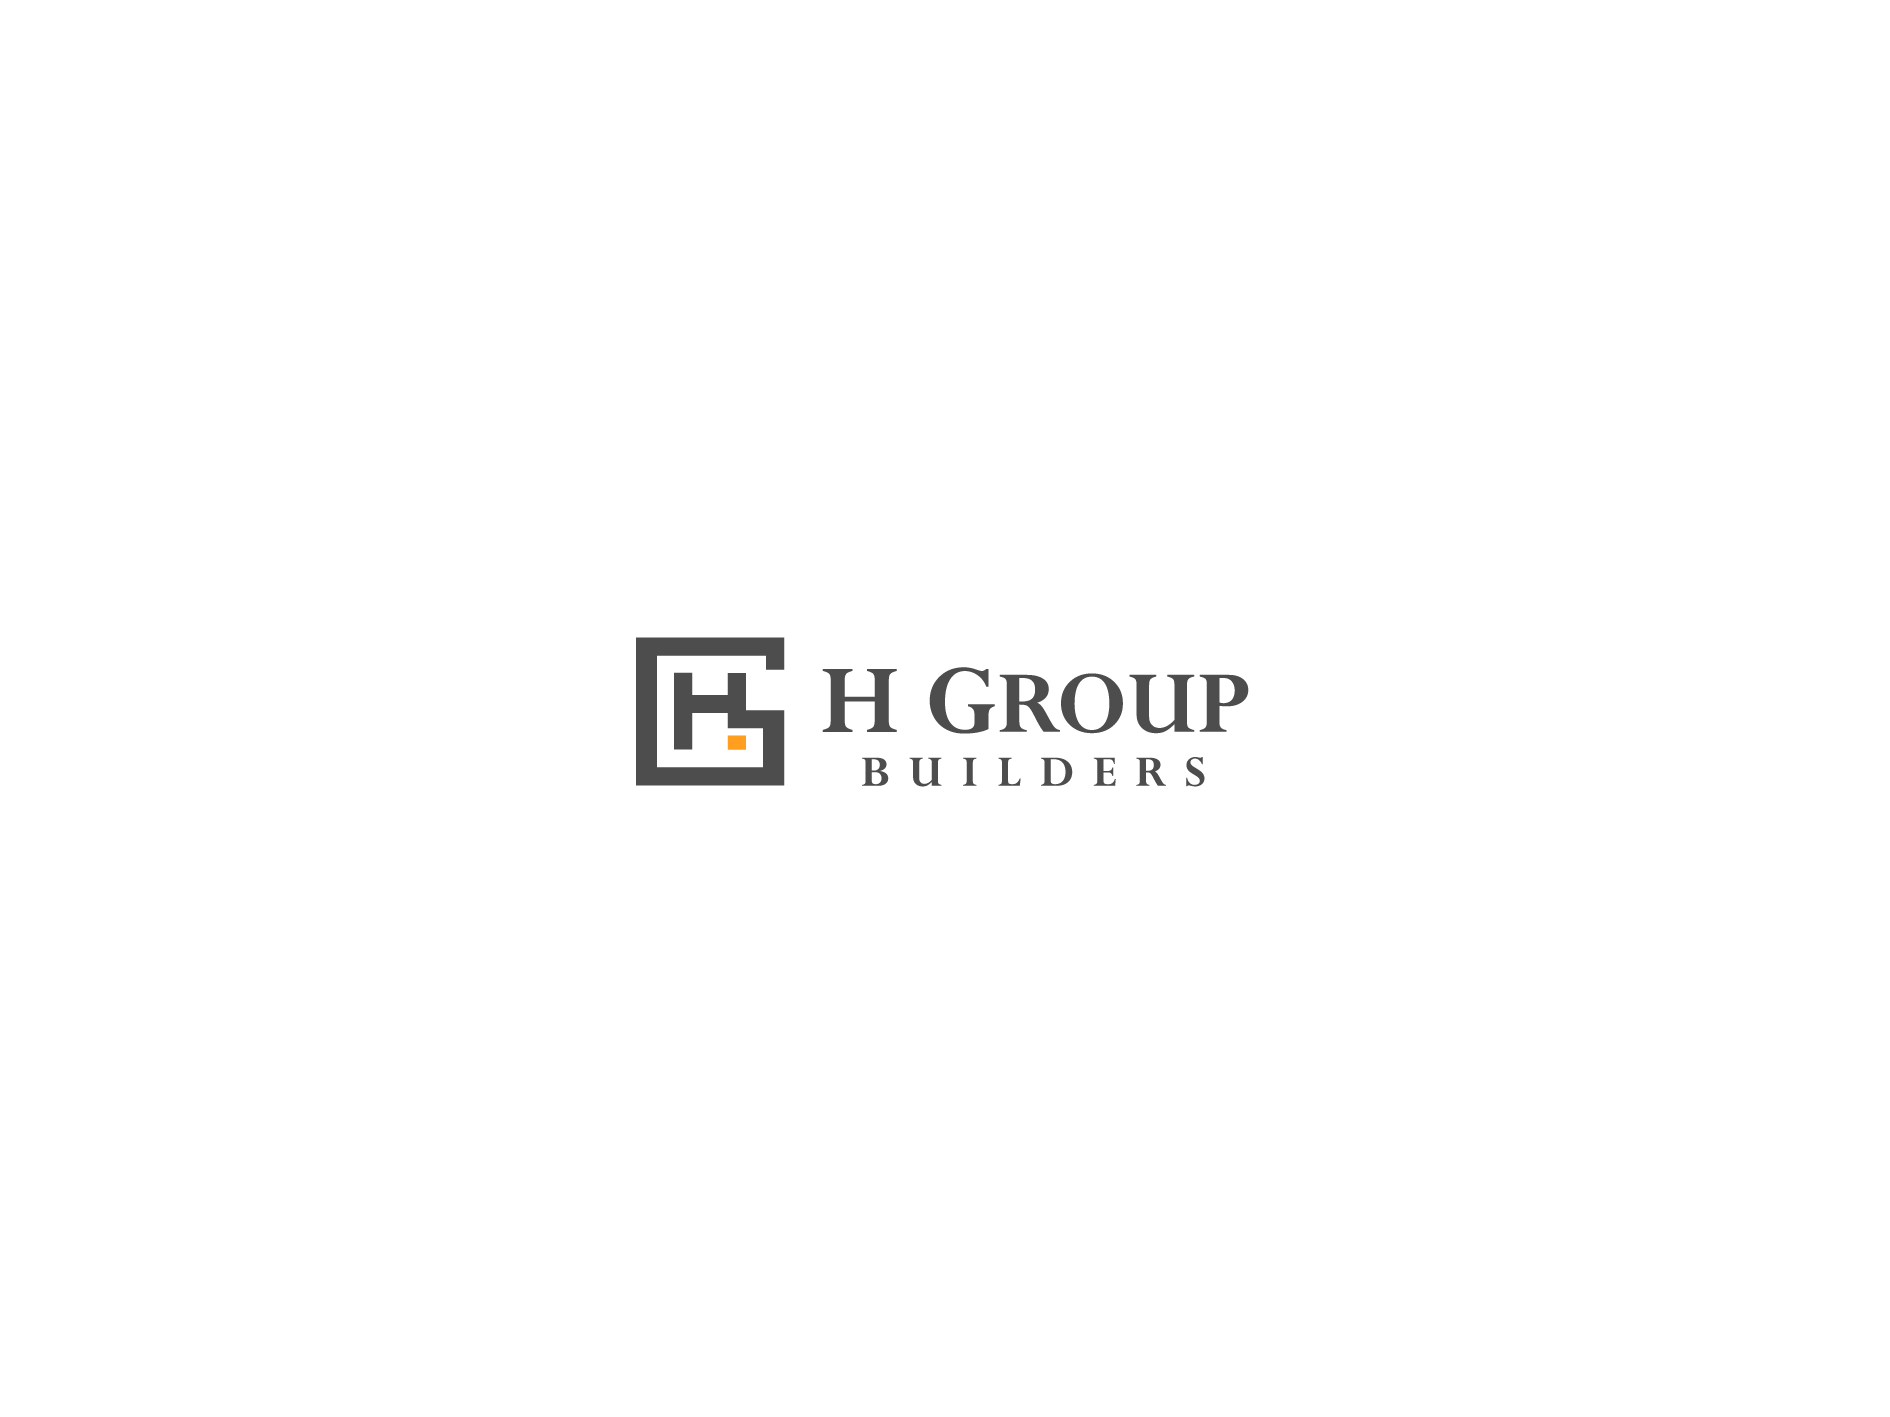 Create the next logo for H Group Builders